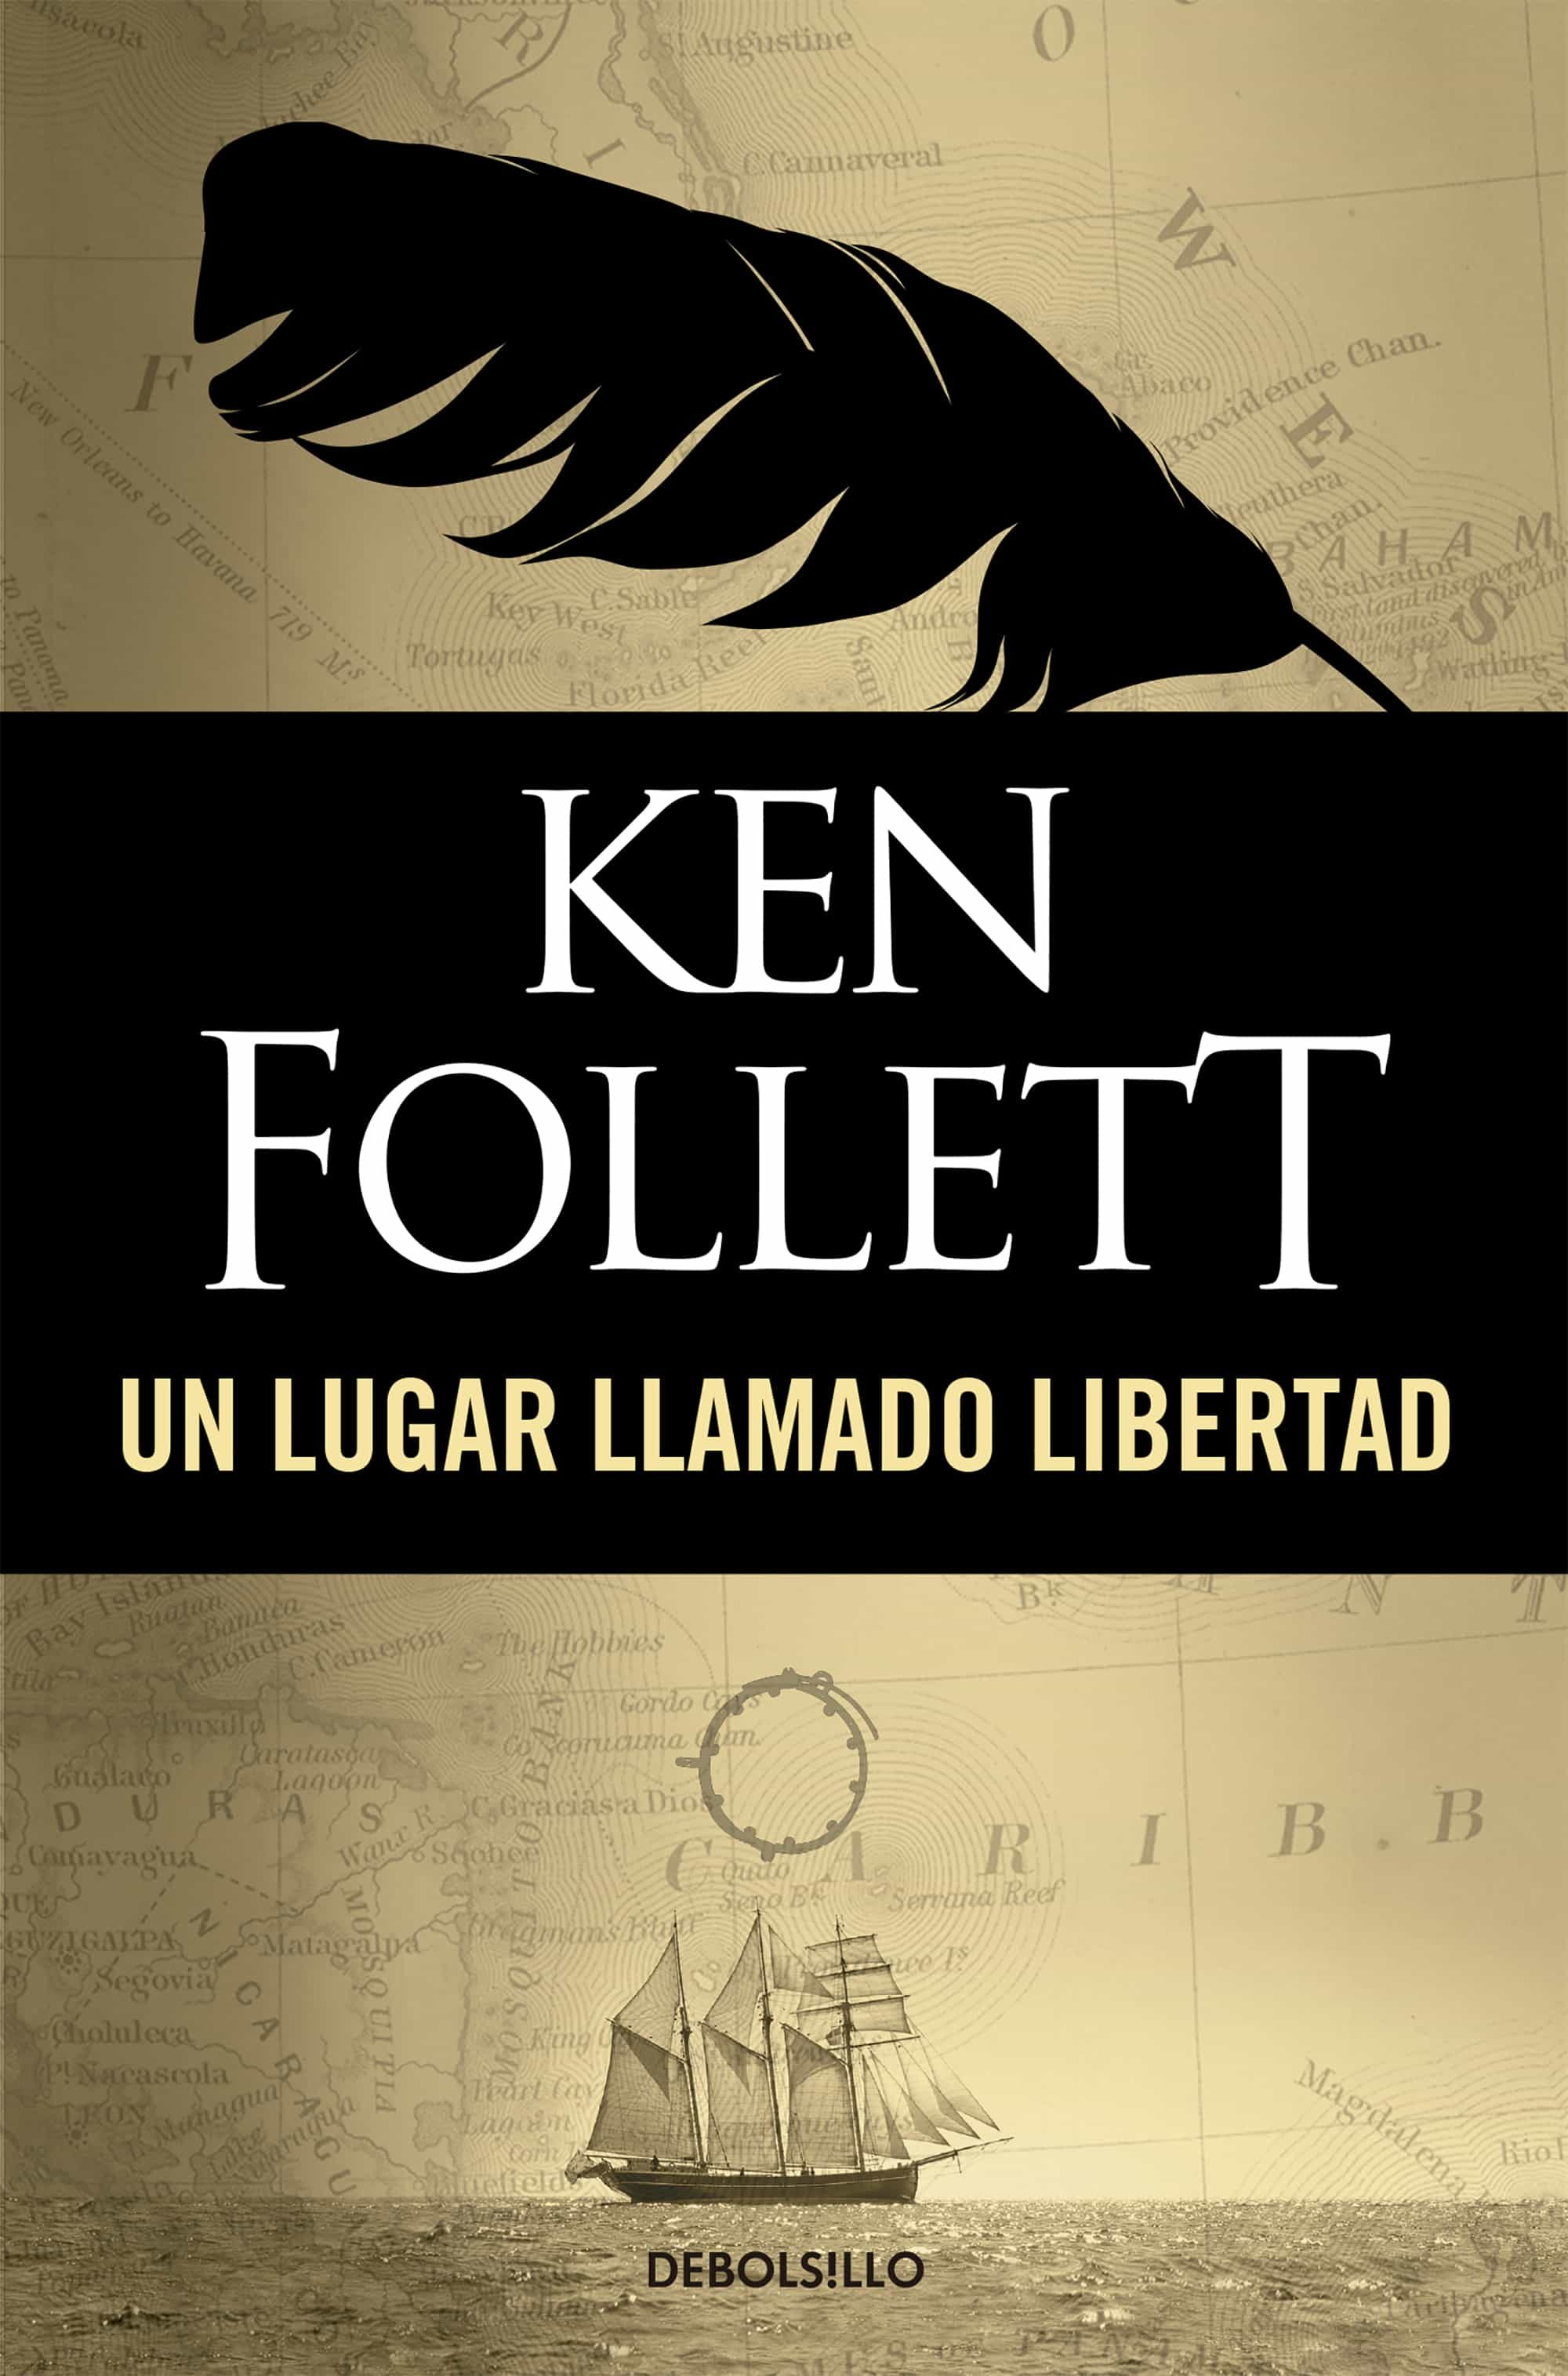 Descargar Libros Ken Follet Libros Ken Follet World Without End Ken Follett Comprar Libro